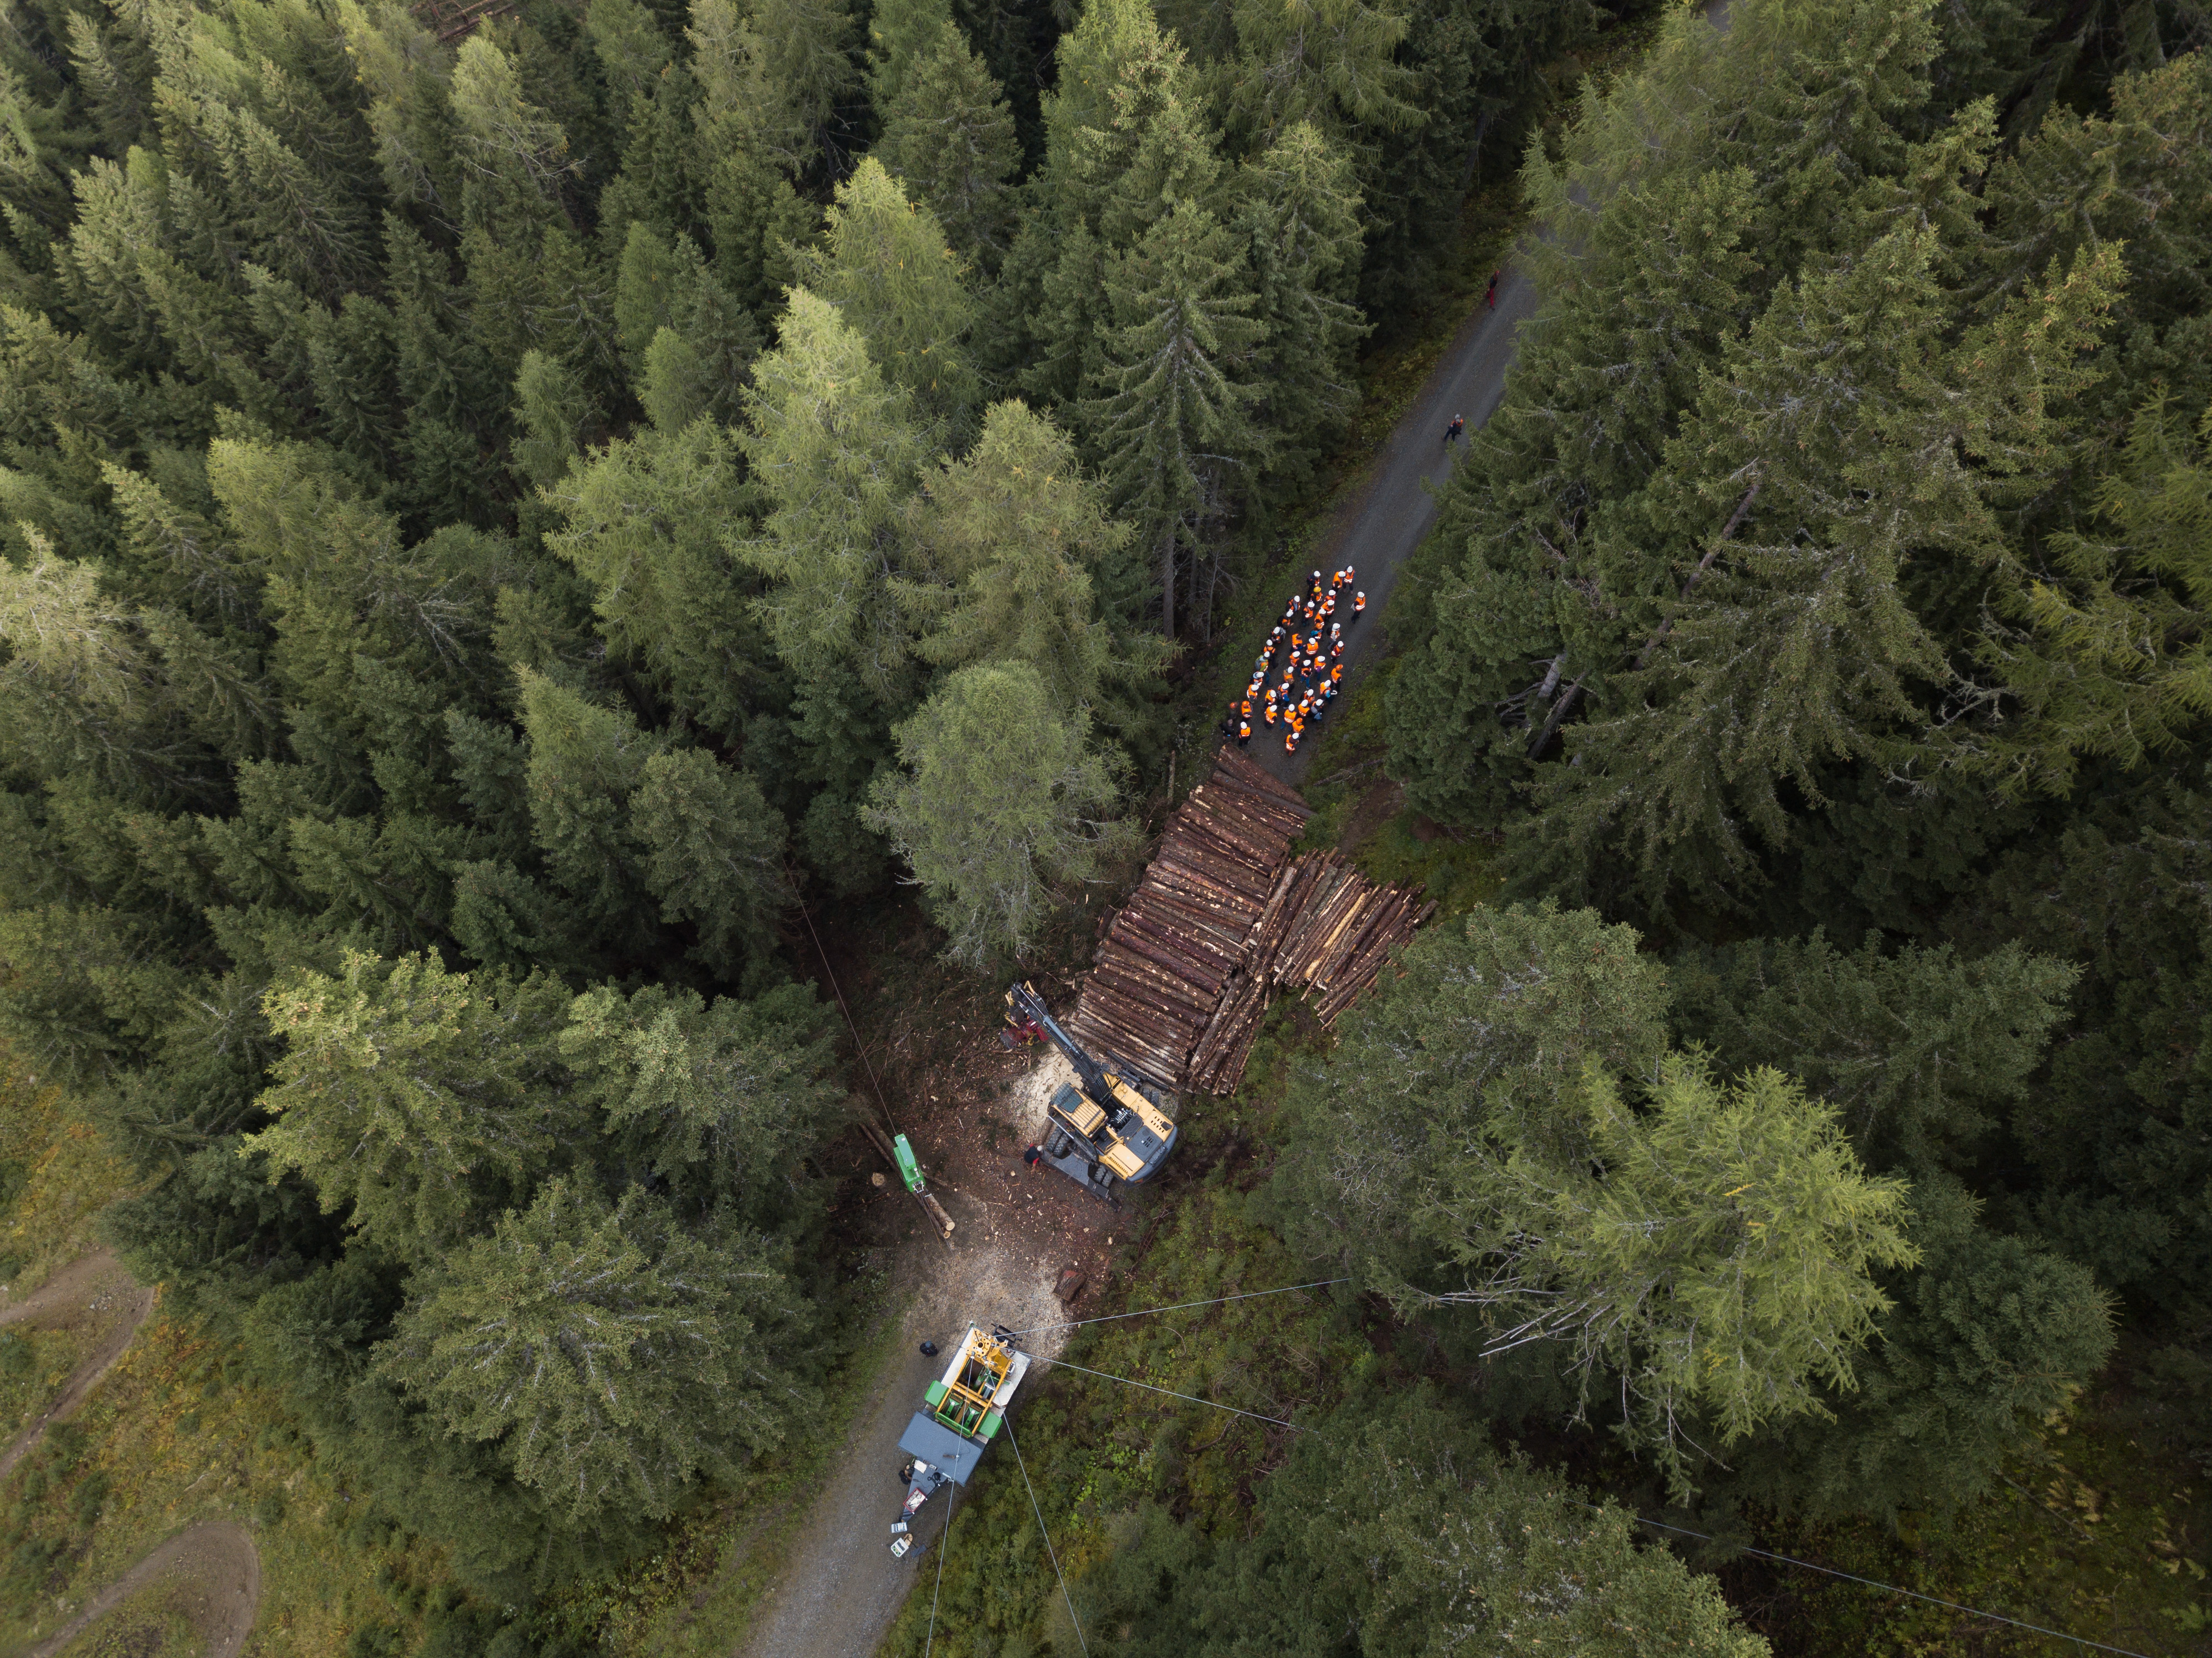 Drone footage of the group in the protective forest